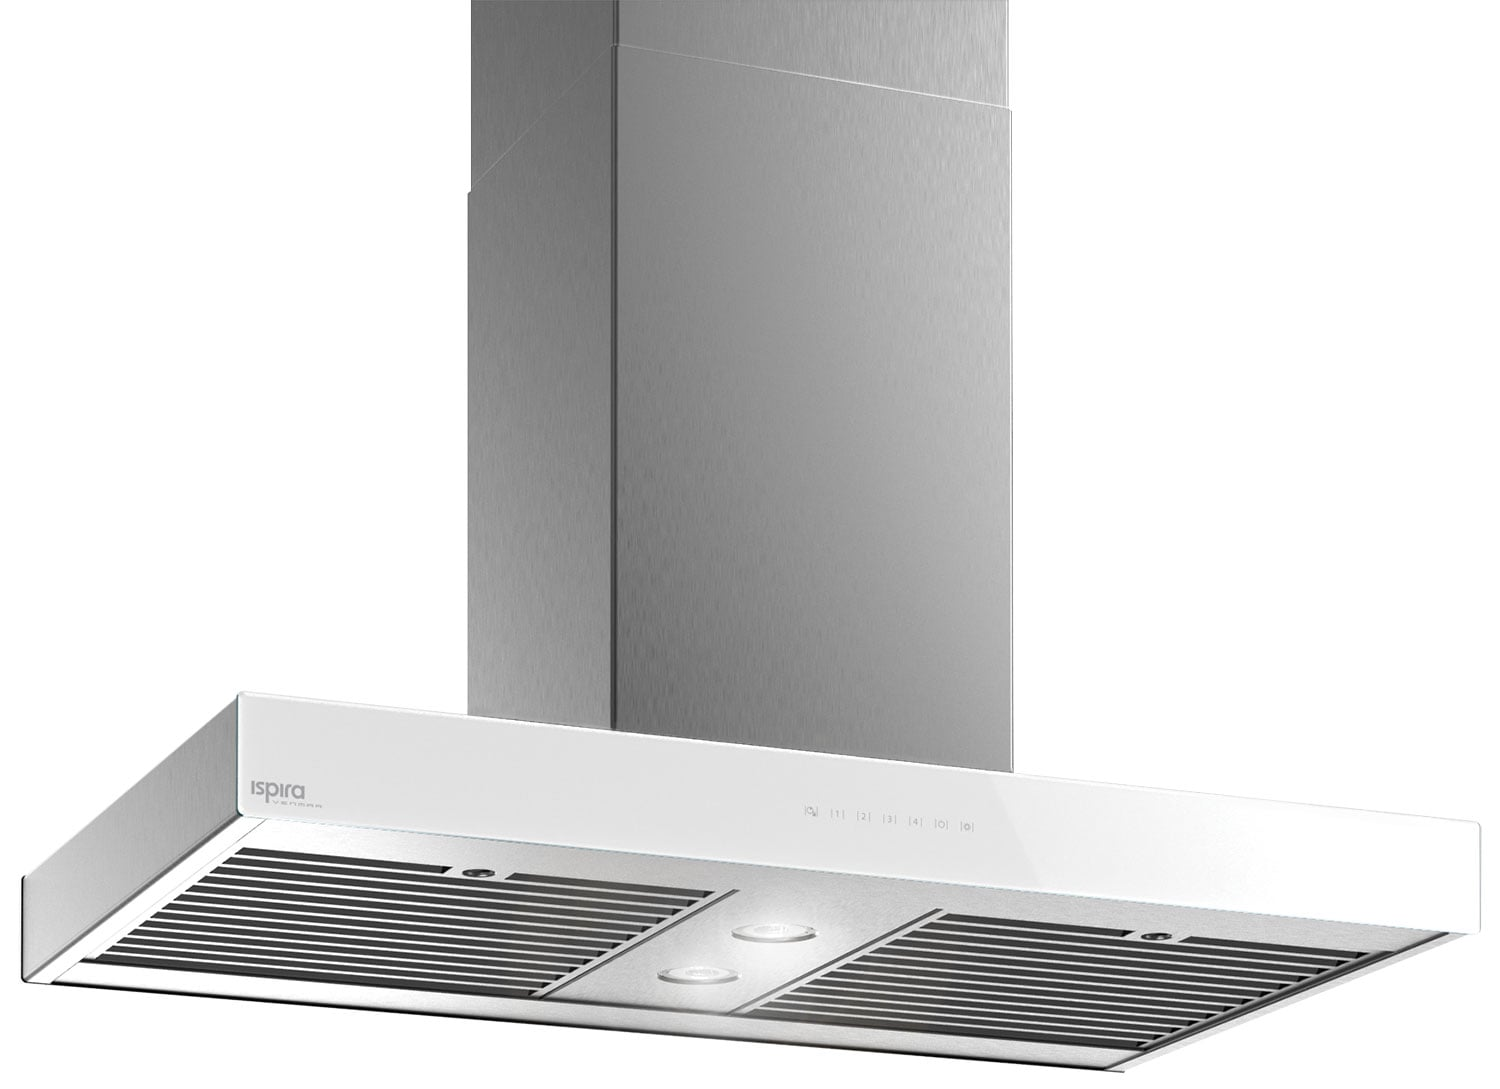 "Venmar Ispira 36"" Island Range Hood – White Panel IS70036WH"